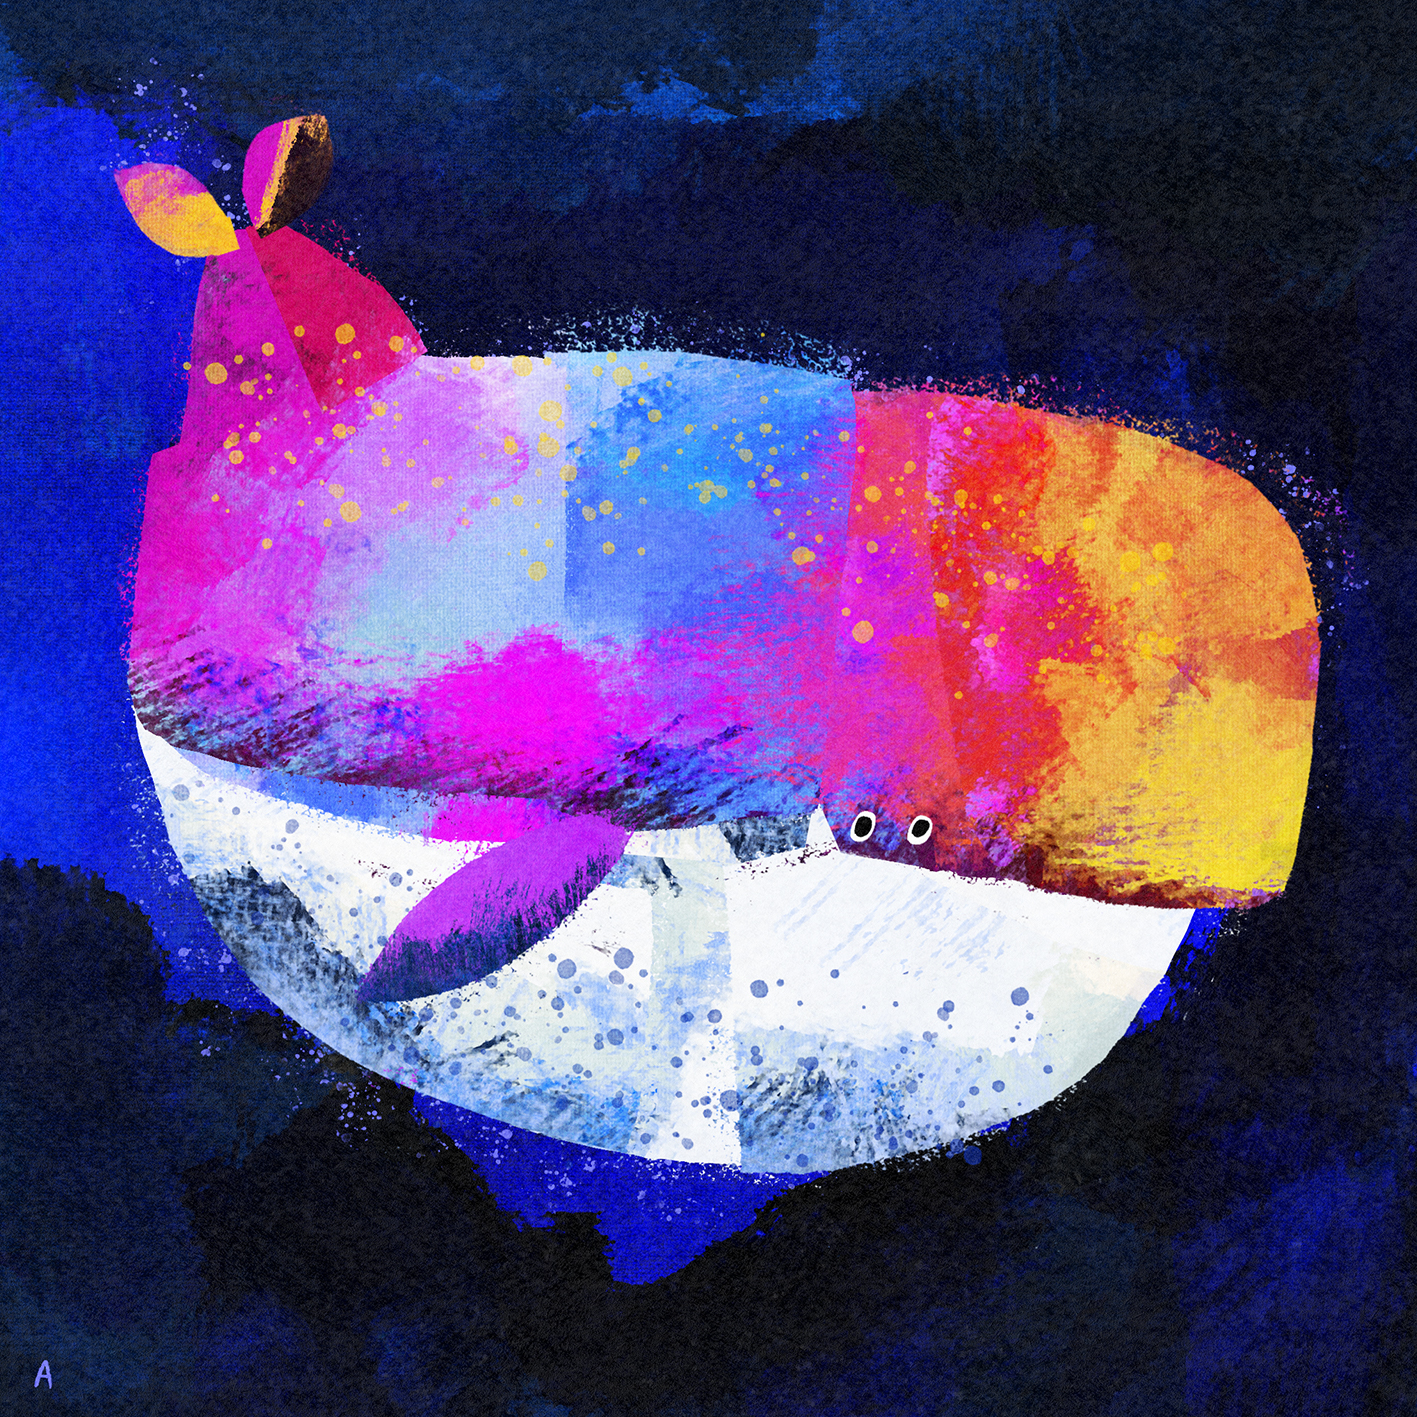 A roundish whale with a square forehead, painted in many different colours - bright pink, light blue, yellow, orange, purple, red with a white belly with blue paint splashes on it - and a tiny tail and two tiny eyes, on a dark blue background with a royal blue trail behind it.